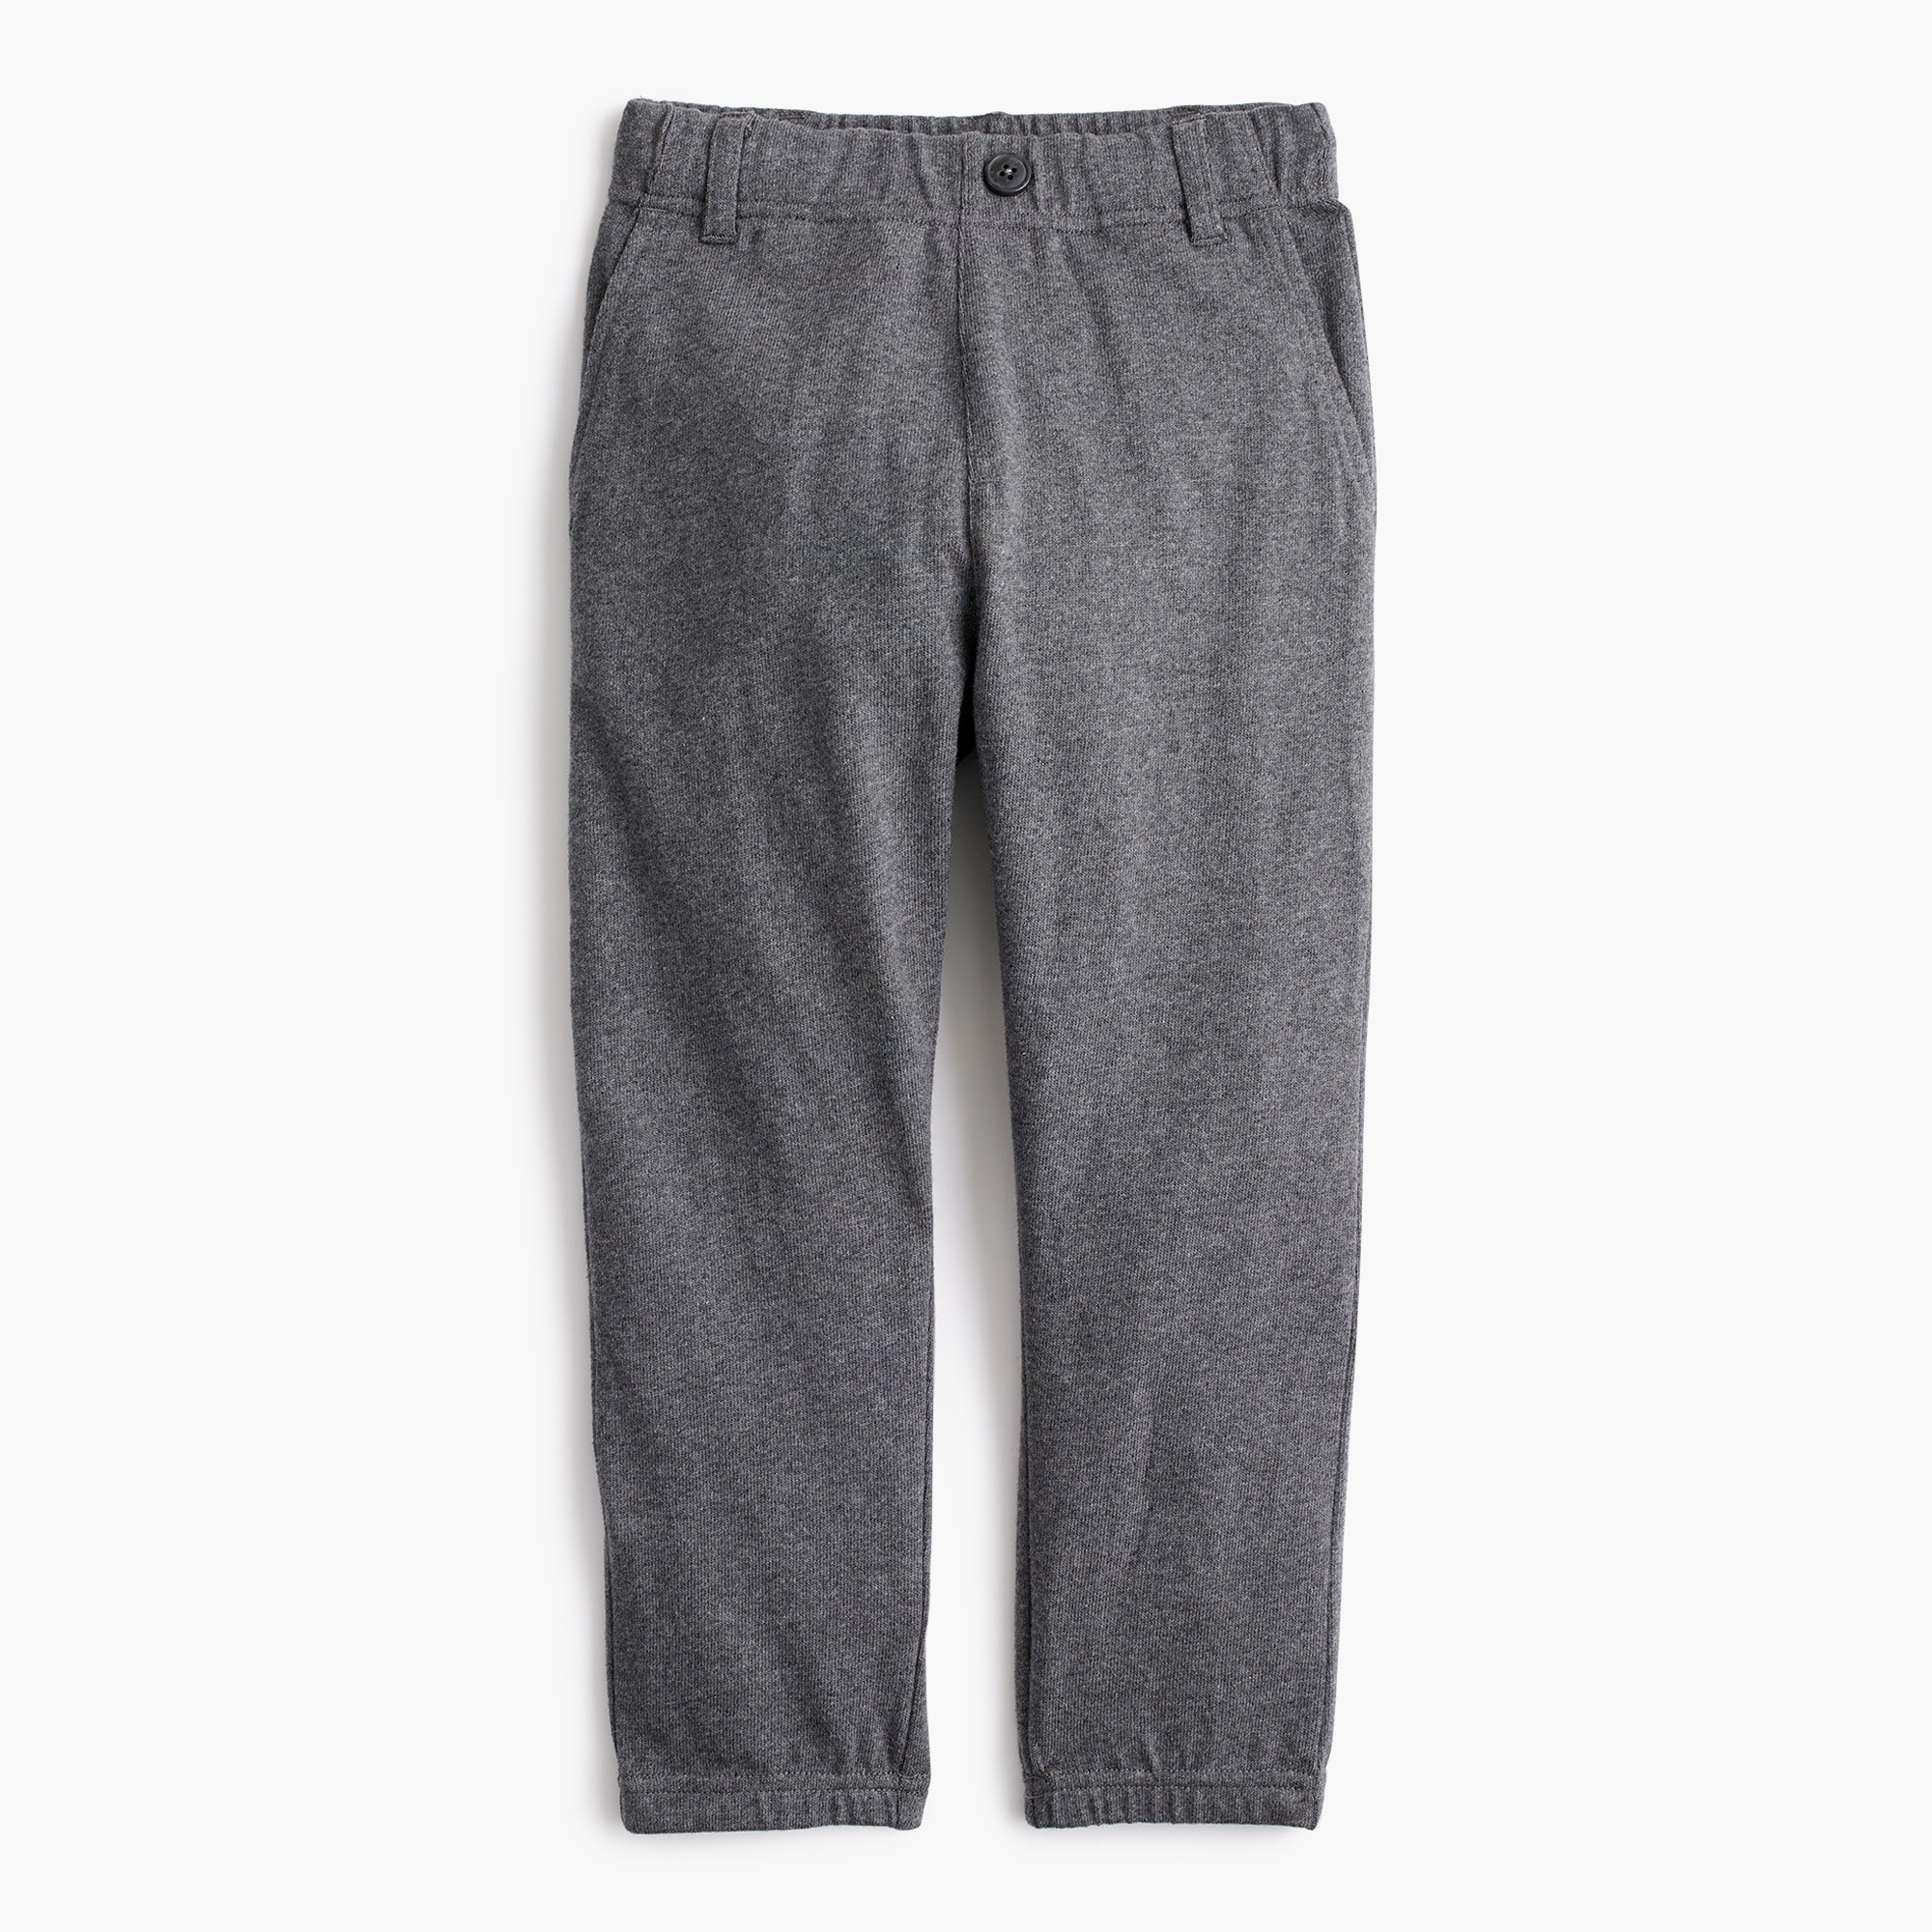 Boys' trouser sweatpant boy pants c